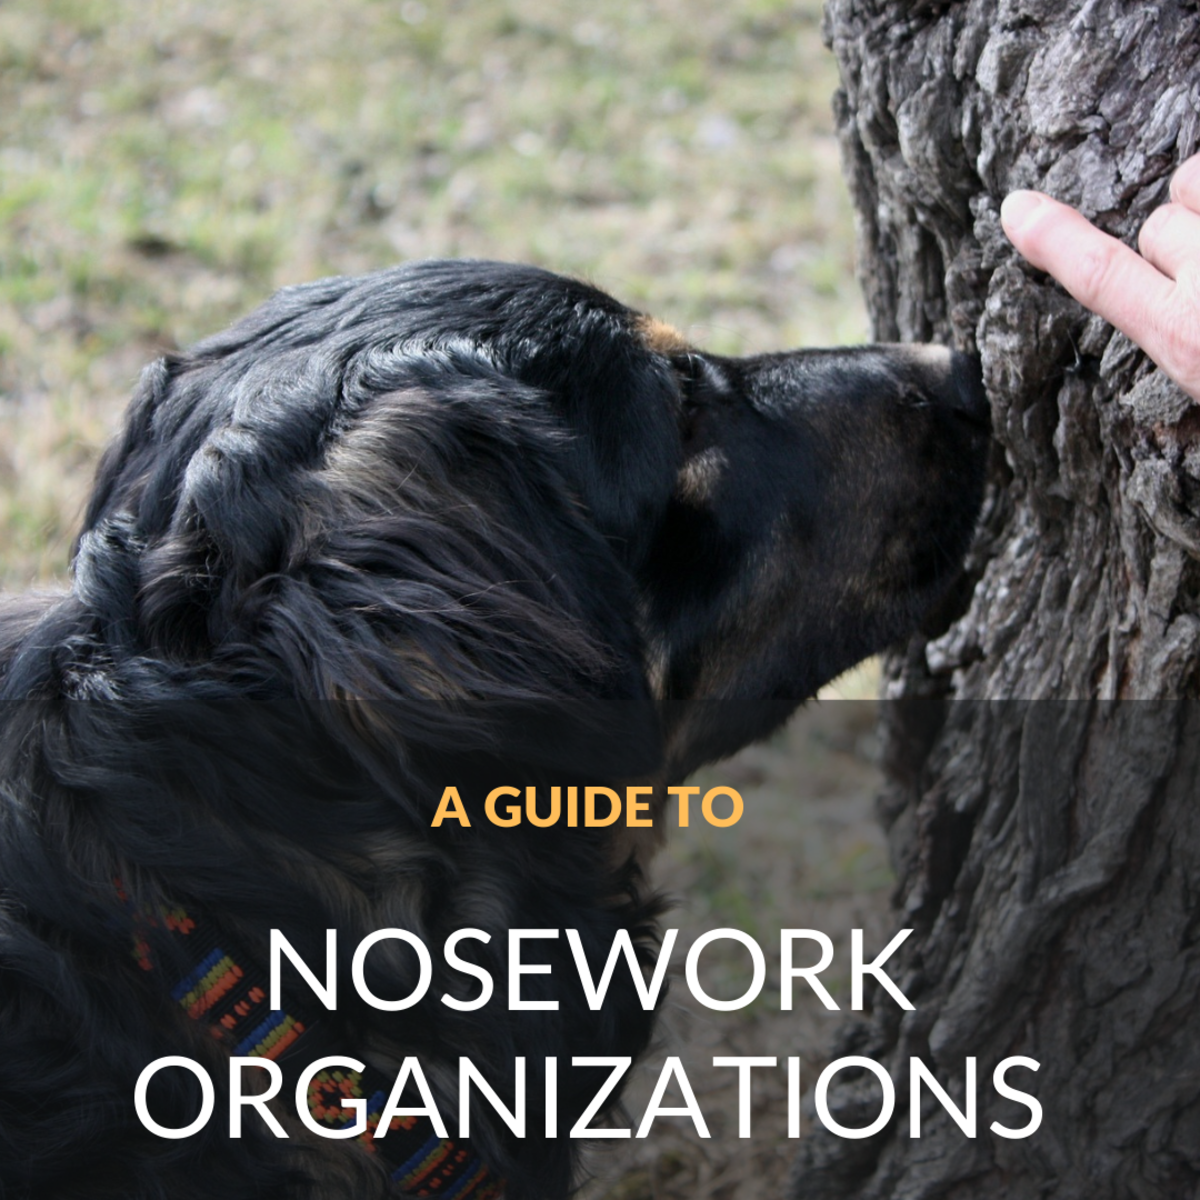 Here's a guide to some of the more well-known canine nosework organizations in addition to a run-down of the types of training/trial environments.